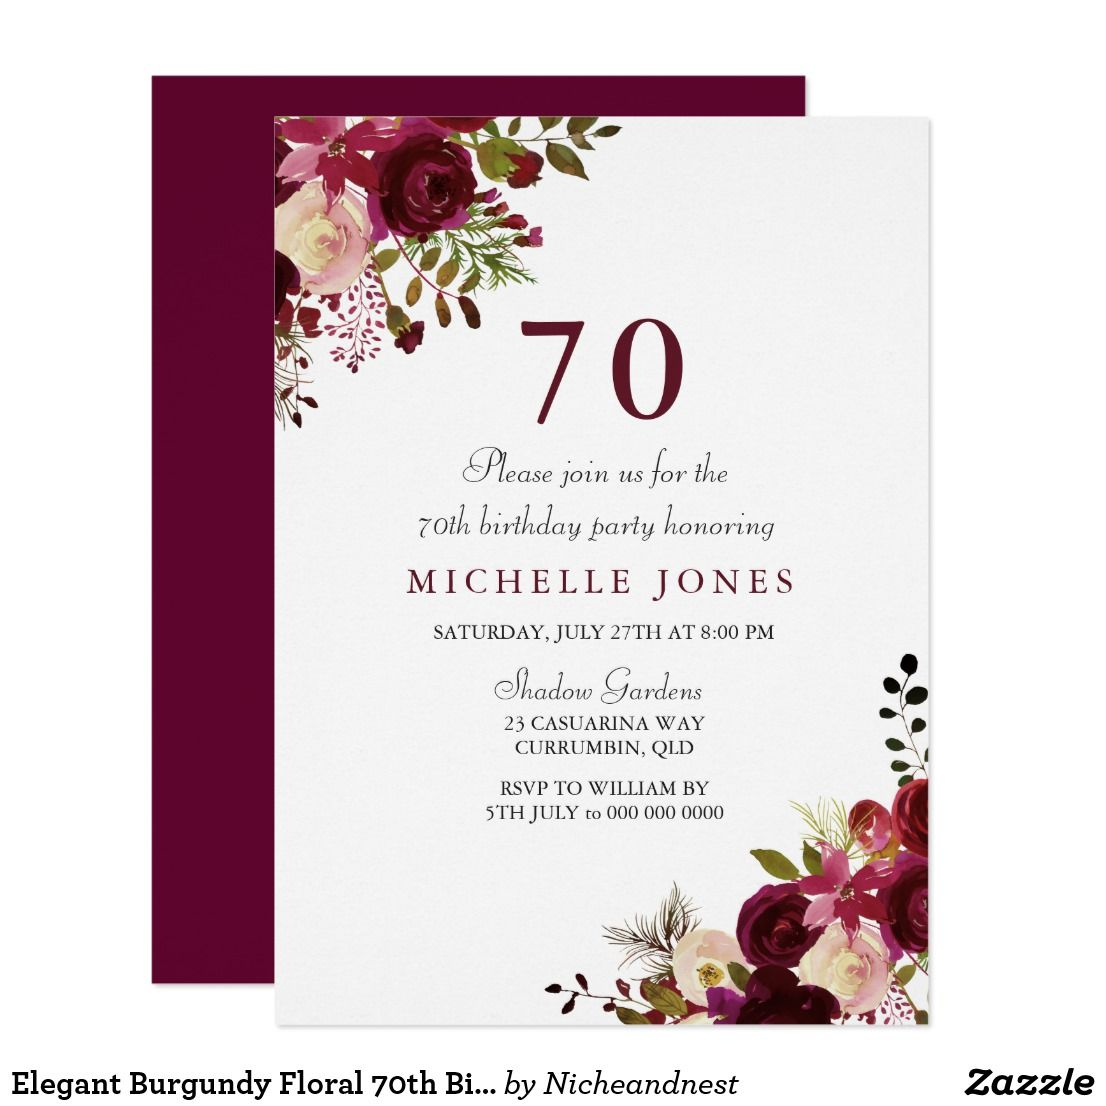 Elegant Burgundy Floral 70th Birthday Invitation Matching Collection In Niche And Nest Store